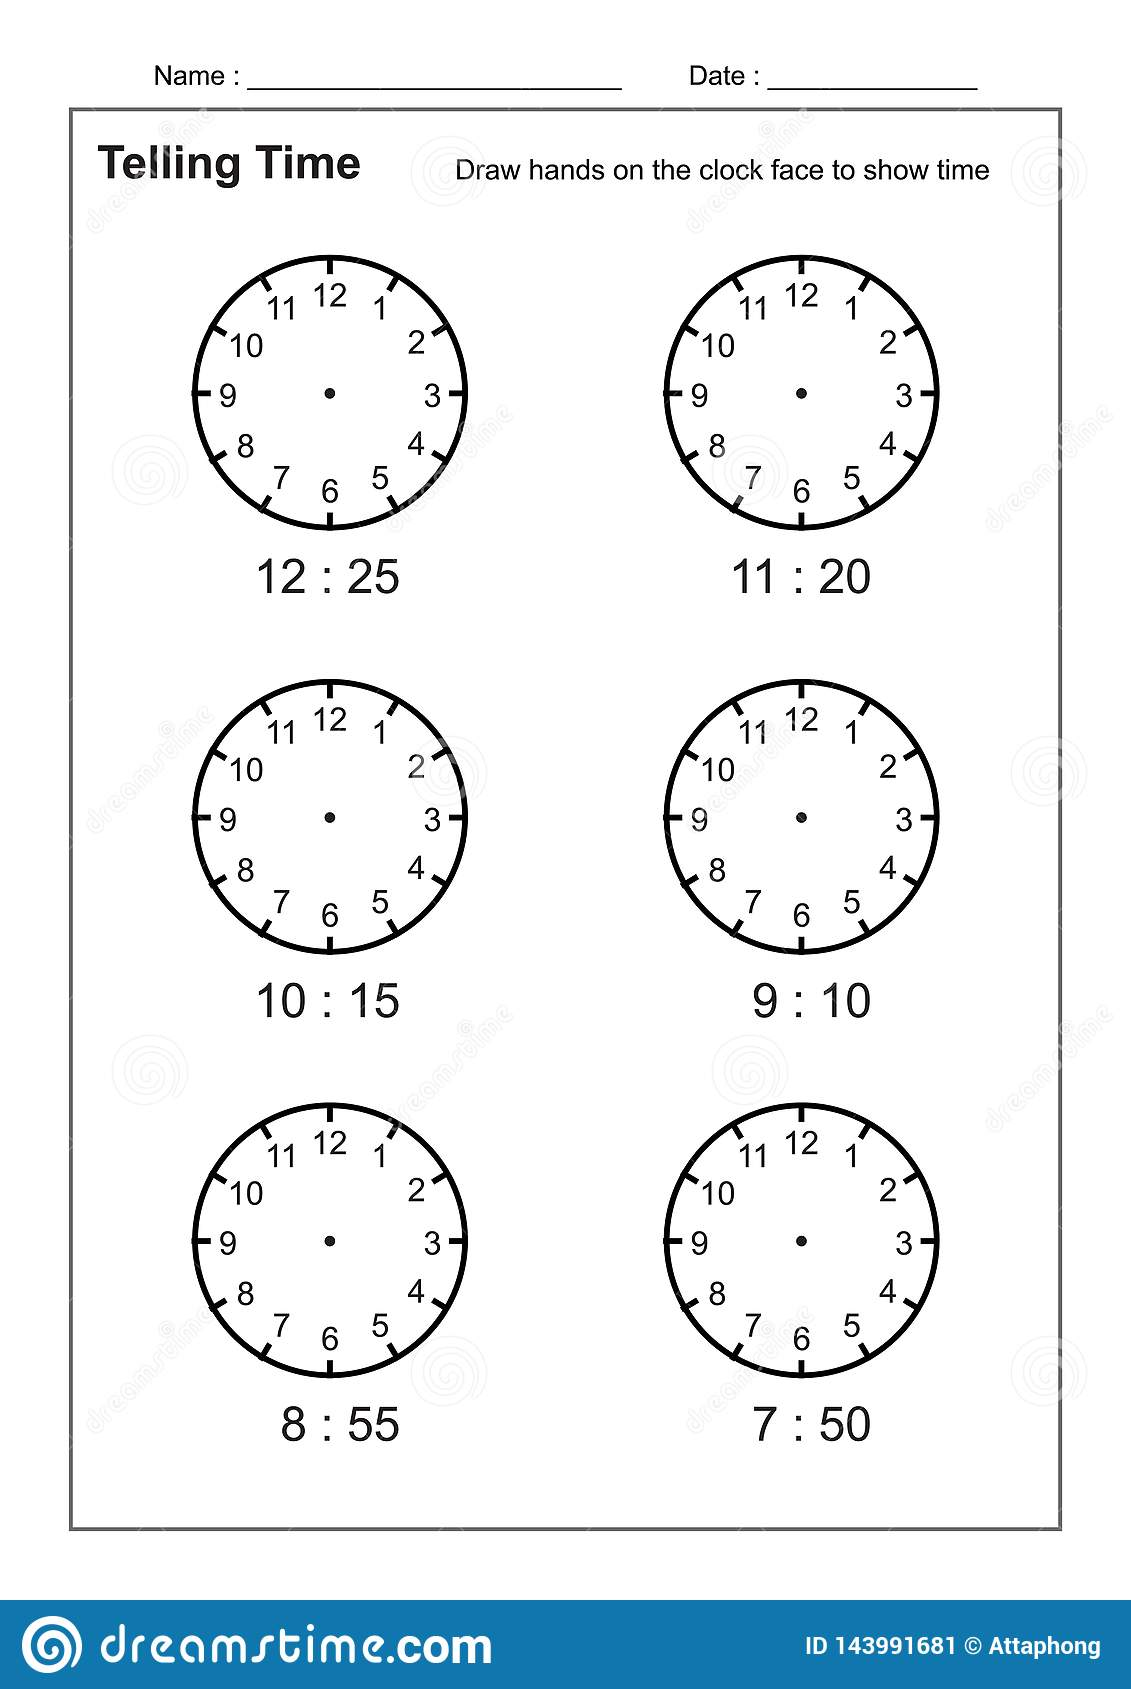 Telling Time Worksheet Write The Time Shown On The Clock